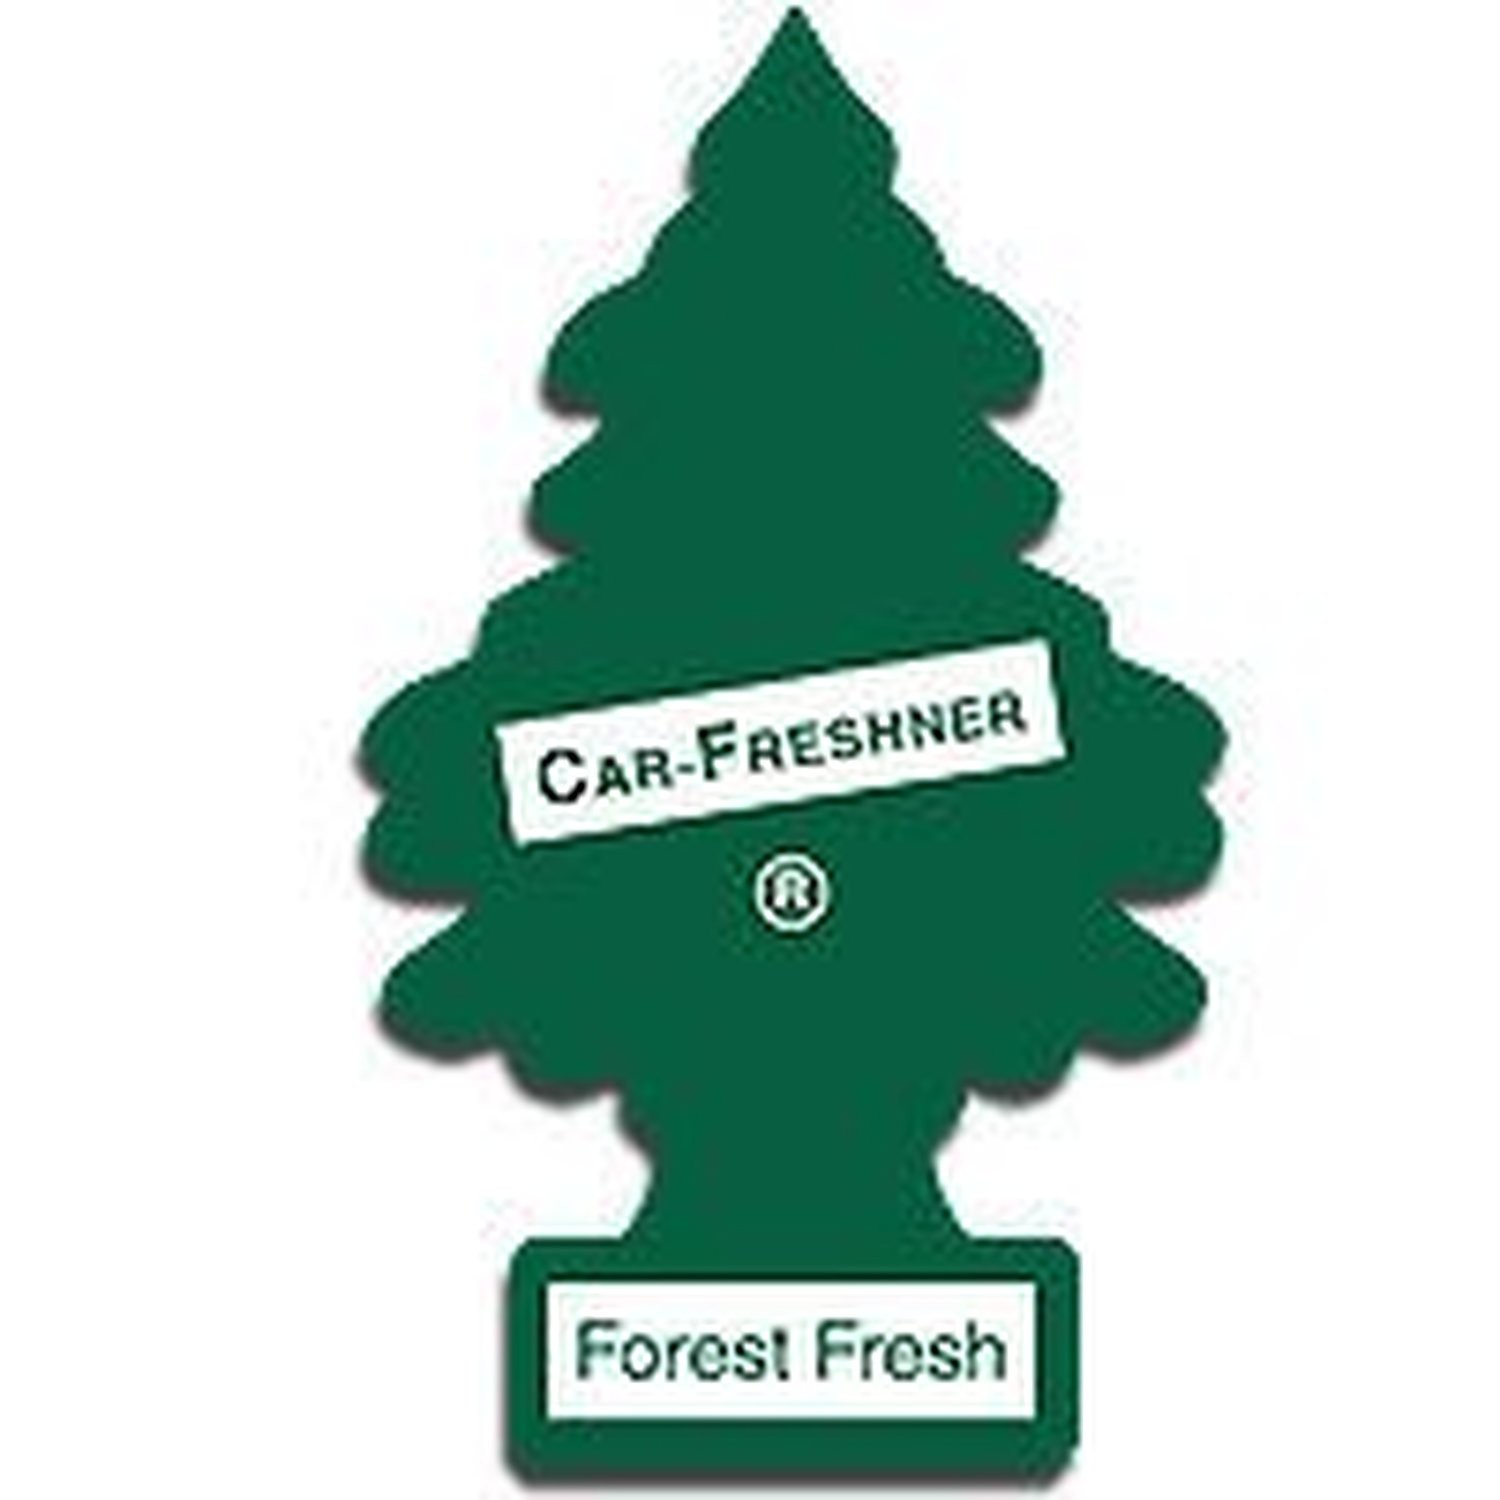 AoE Performance Magic Tree Car Air Freshener Duo Gift Pack Forest Fresh And Bouquet